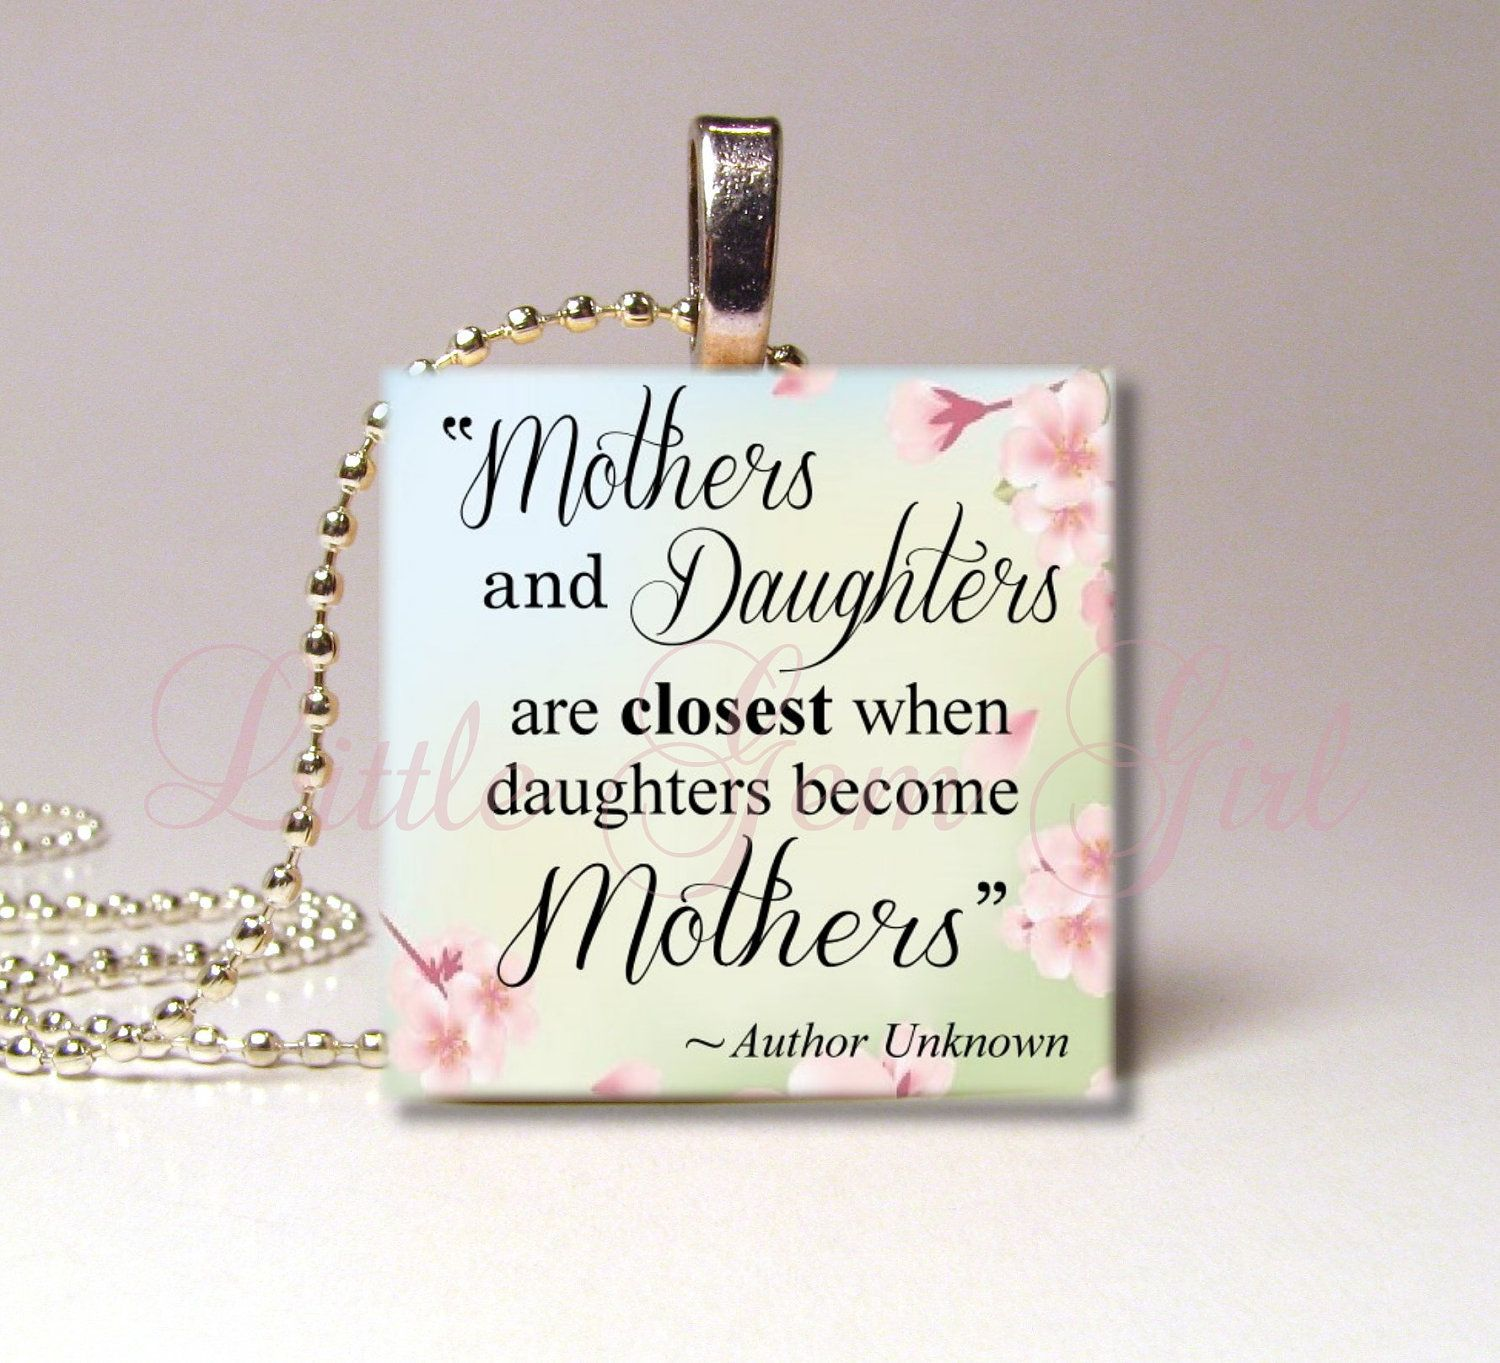 Happy Mothers Day Quotes From Step Daughter: 7 Unique Mother's Day Quotes From Daughter In English